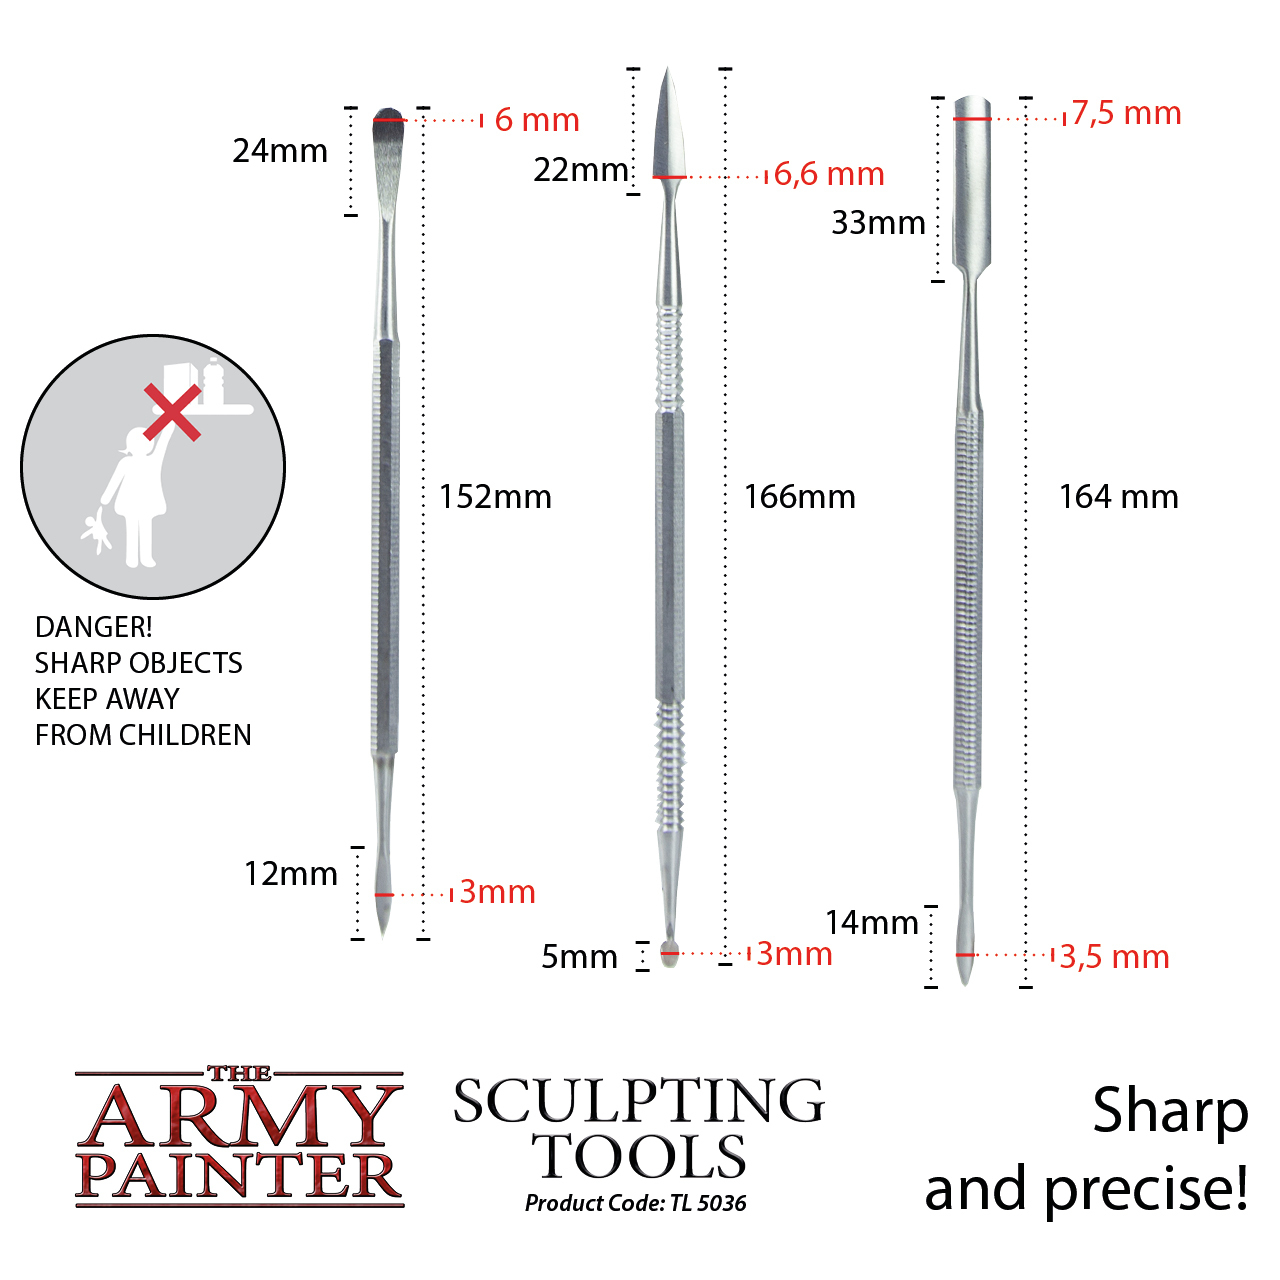 Army Painter Sculpting Tools image